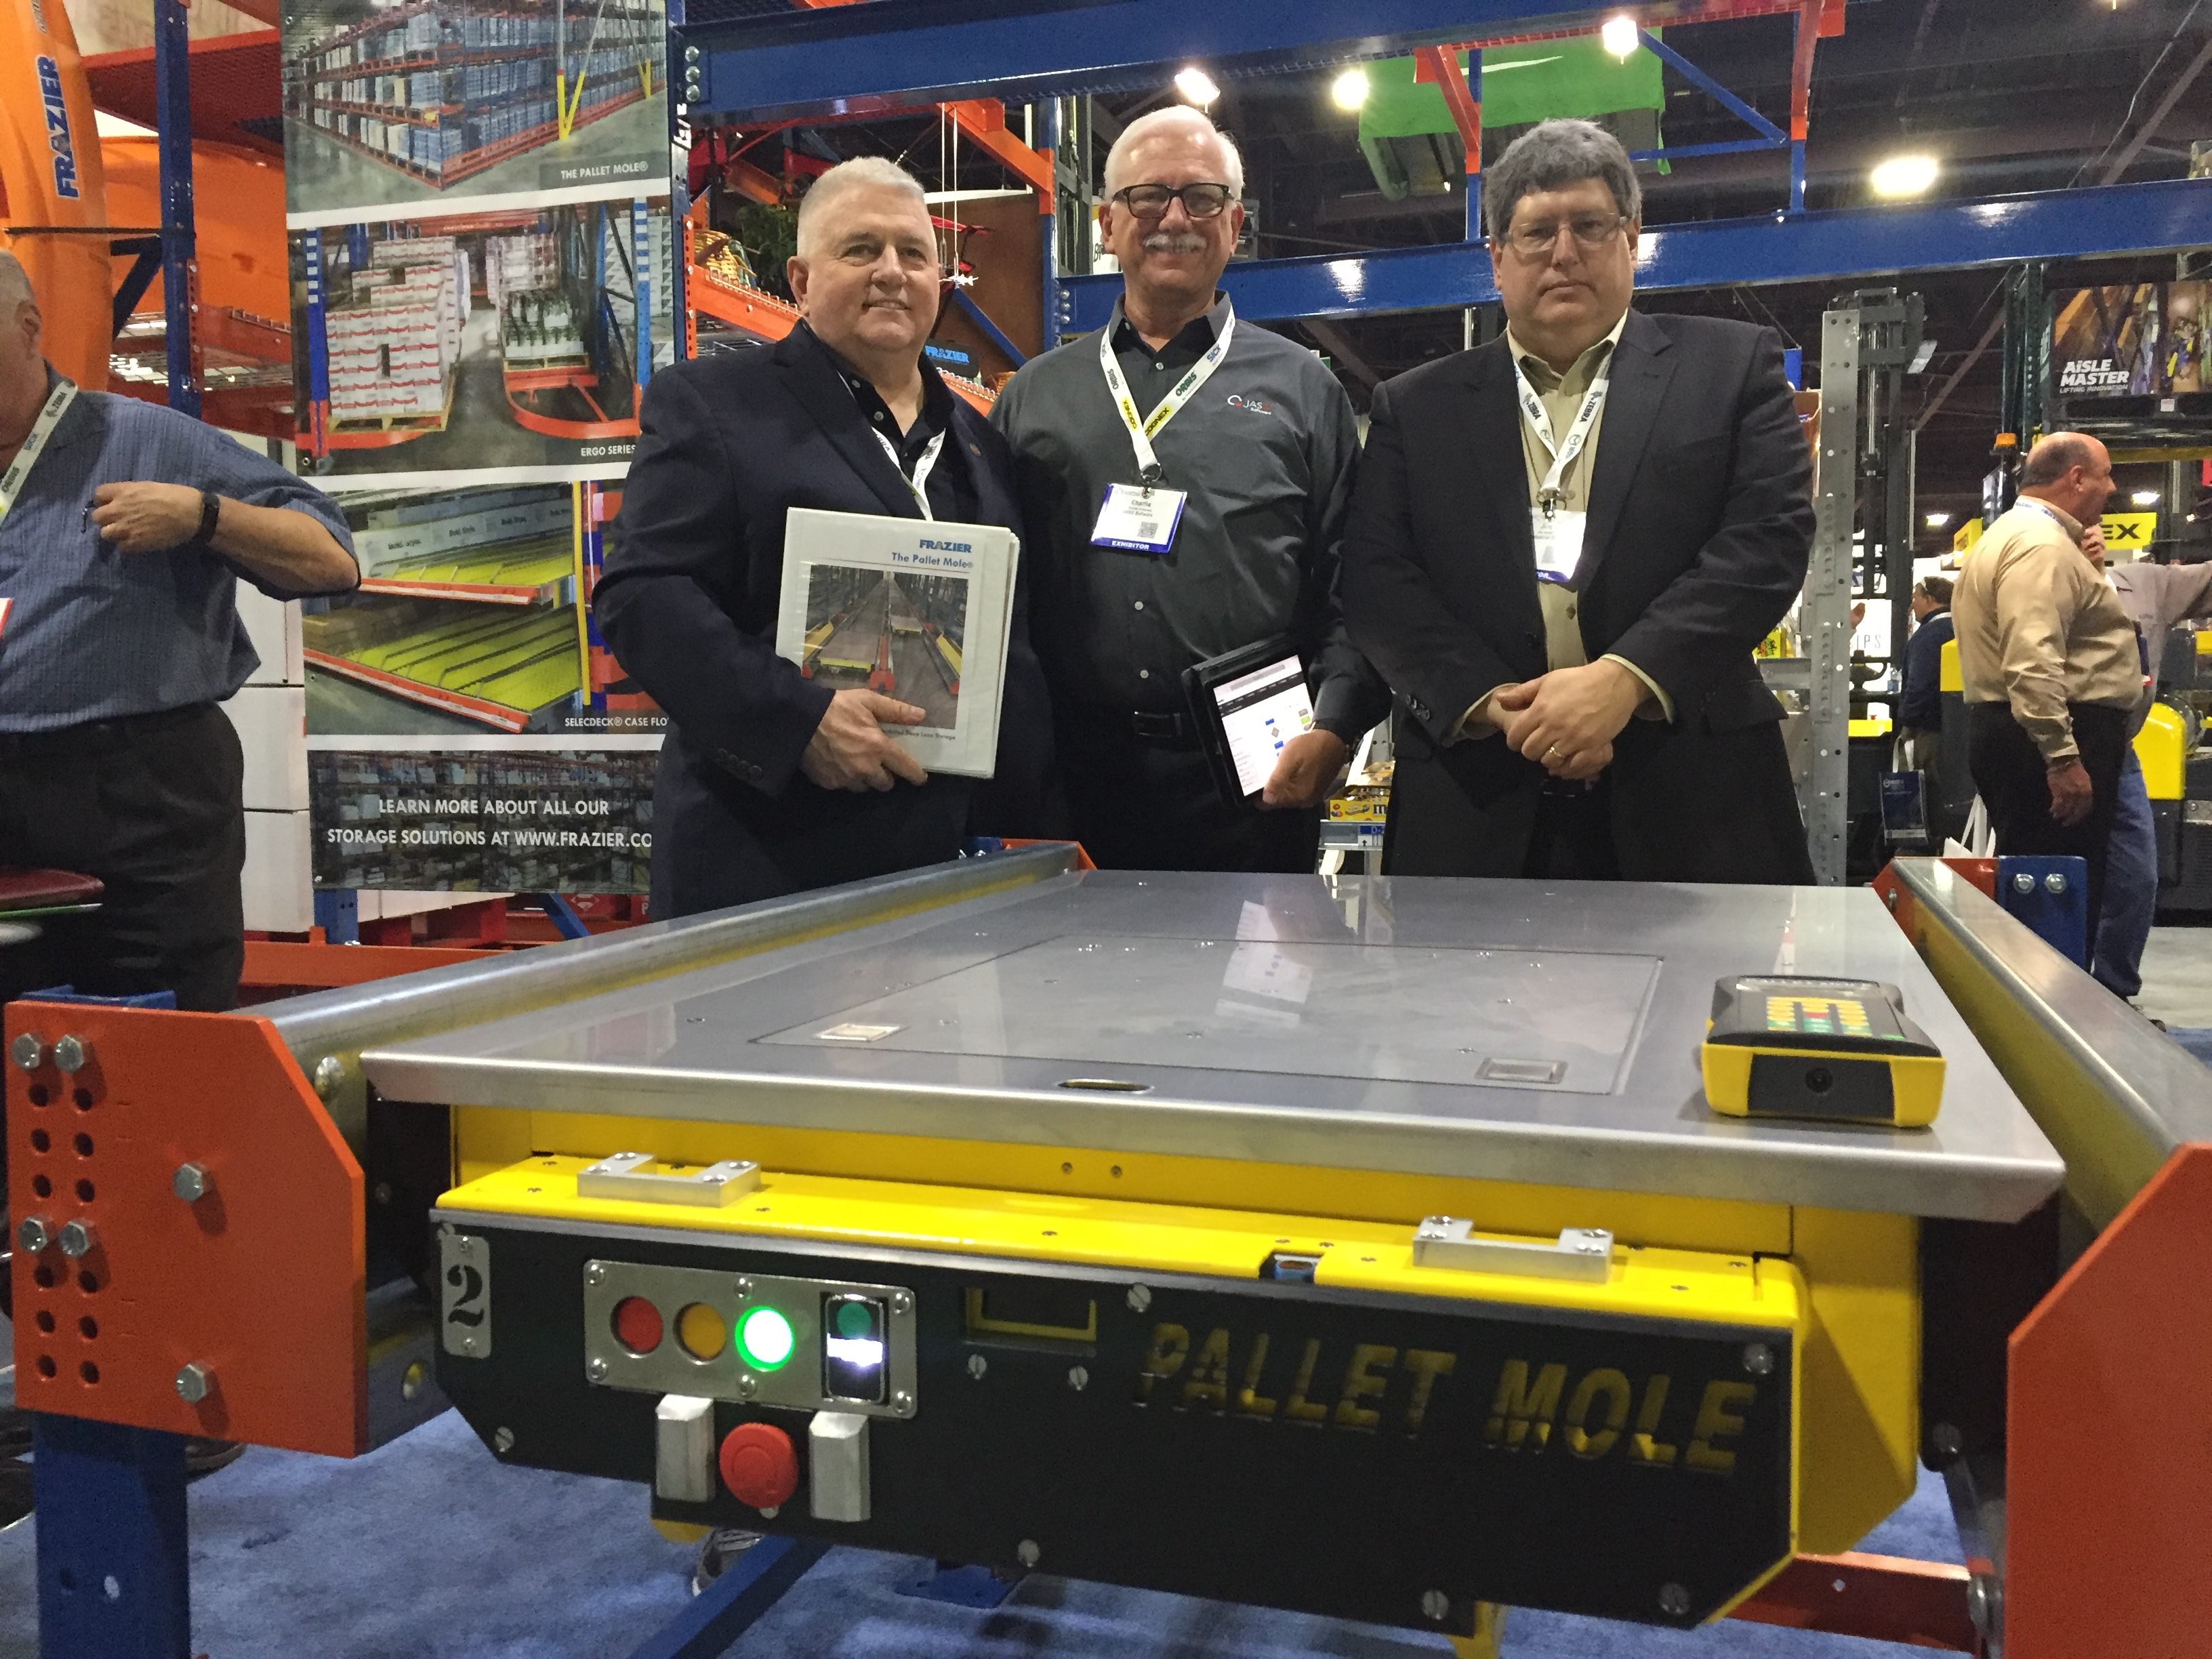 <p>Domenick Iellimo, EVP of Frazier Industrial, Charlie Armstrong, partner at JASCI Software, and Jim Kocsis, GM of Pallet Mole automation, showcase the latest rugged version of the Pallet Mole.</p>